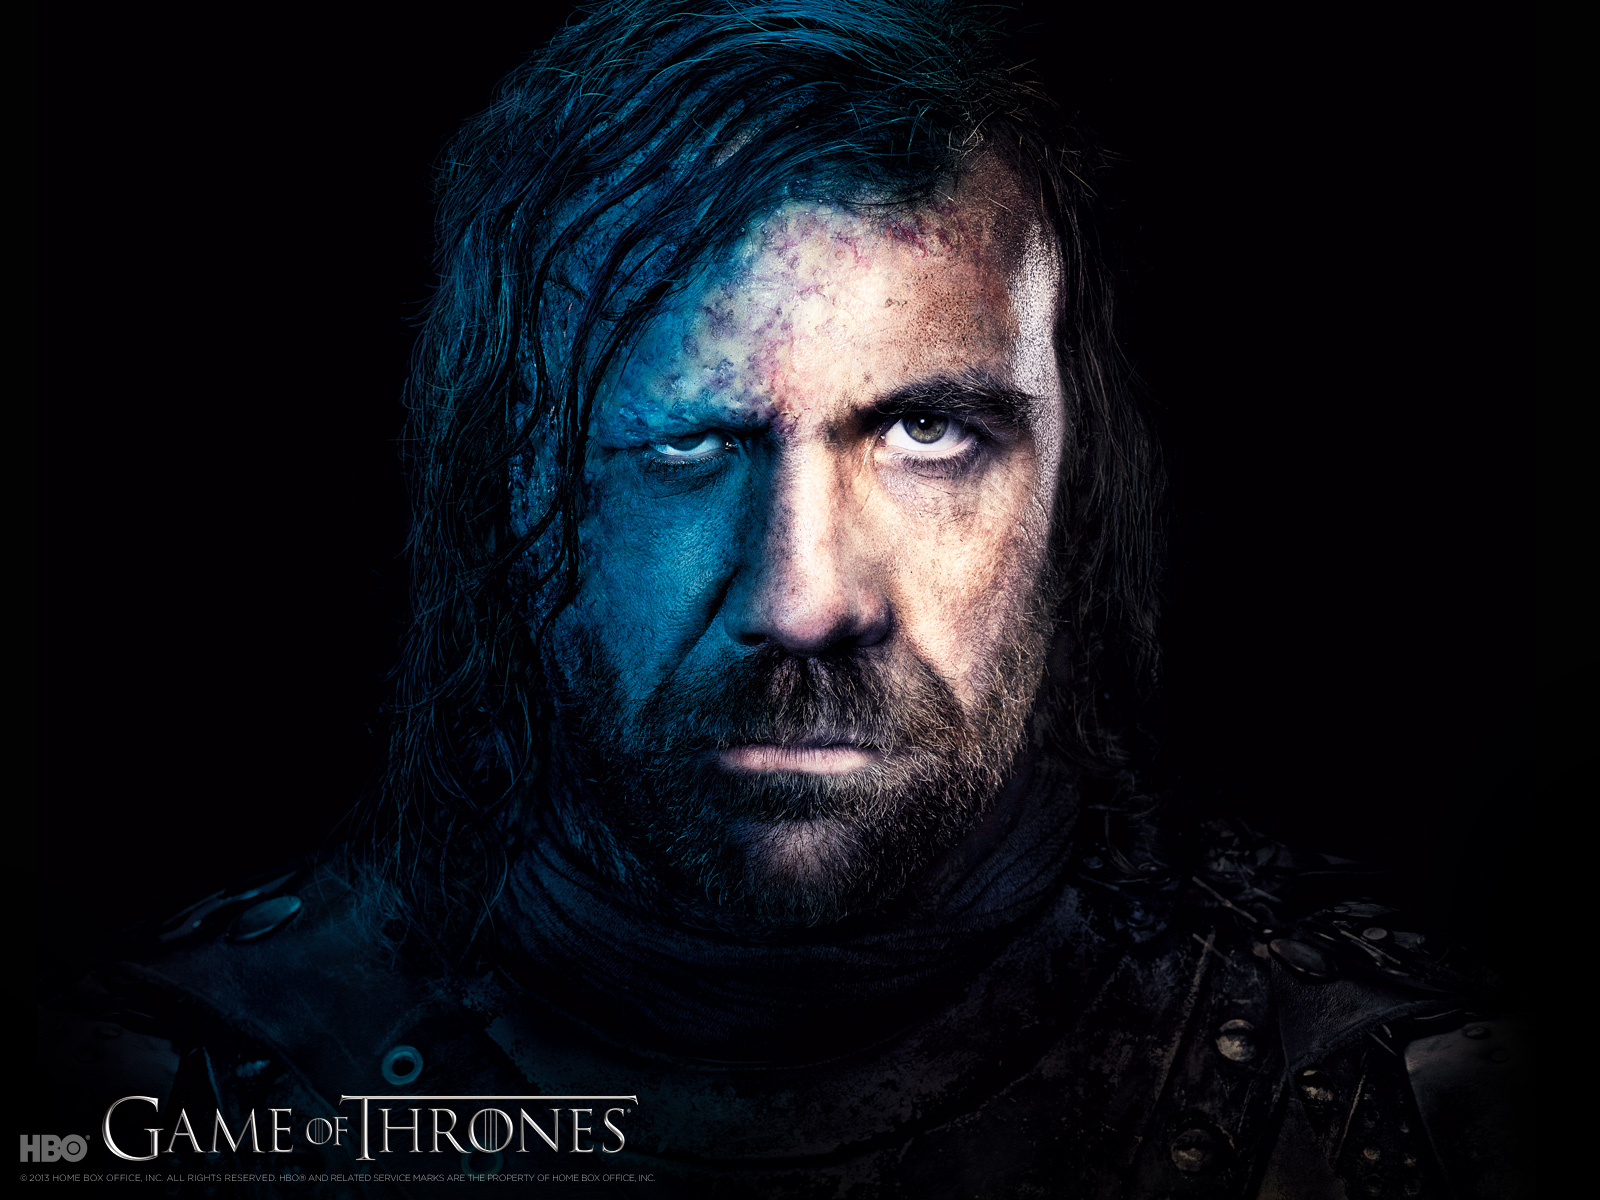 Sandor Clegane - Game of Thrones Wallpaper (33779425) - Fanpop